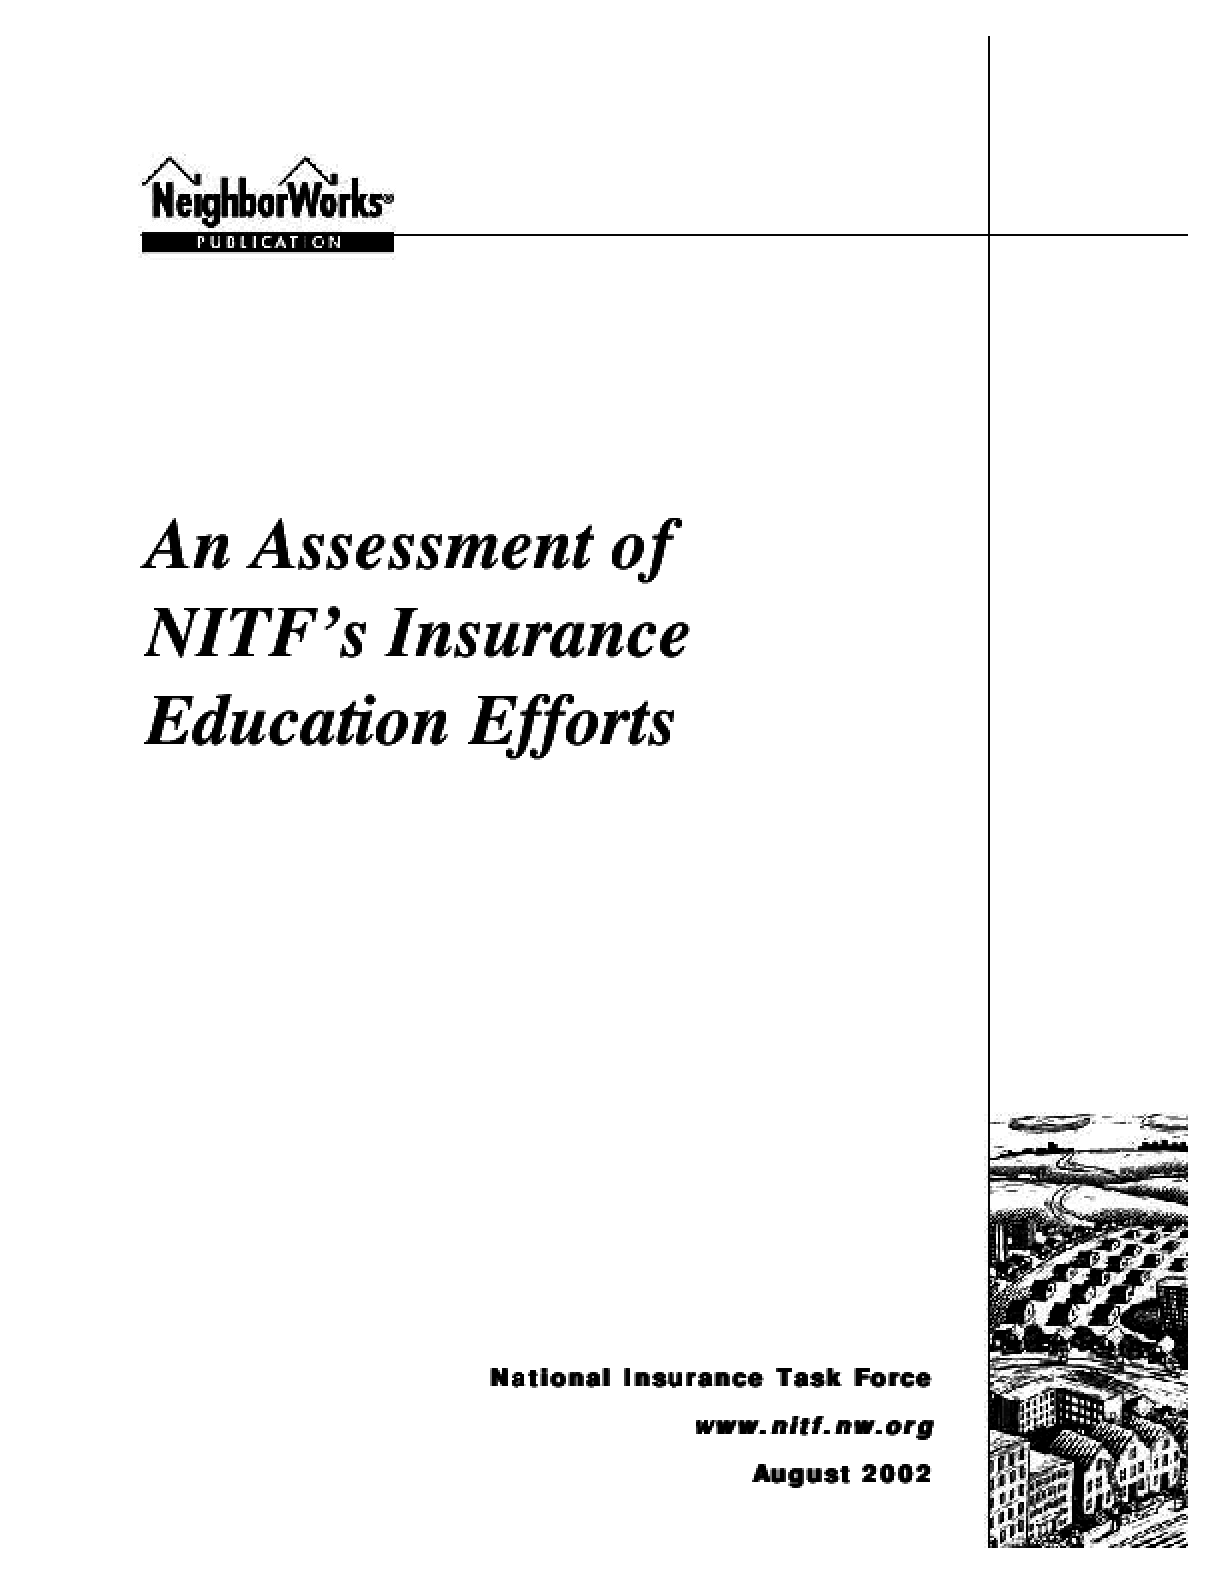 Assessment of NIA's (NITF) Insurance Education Efforts